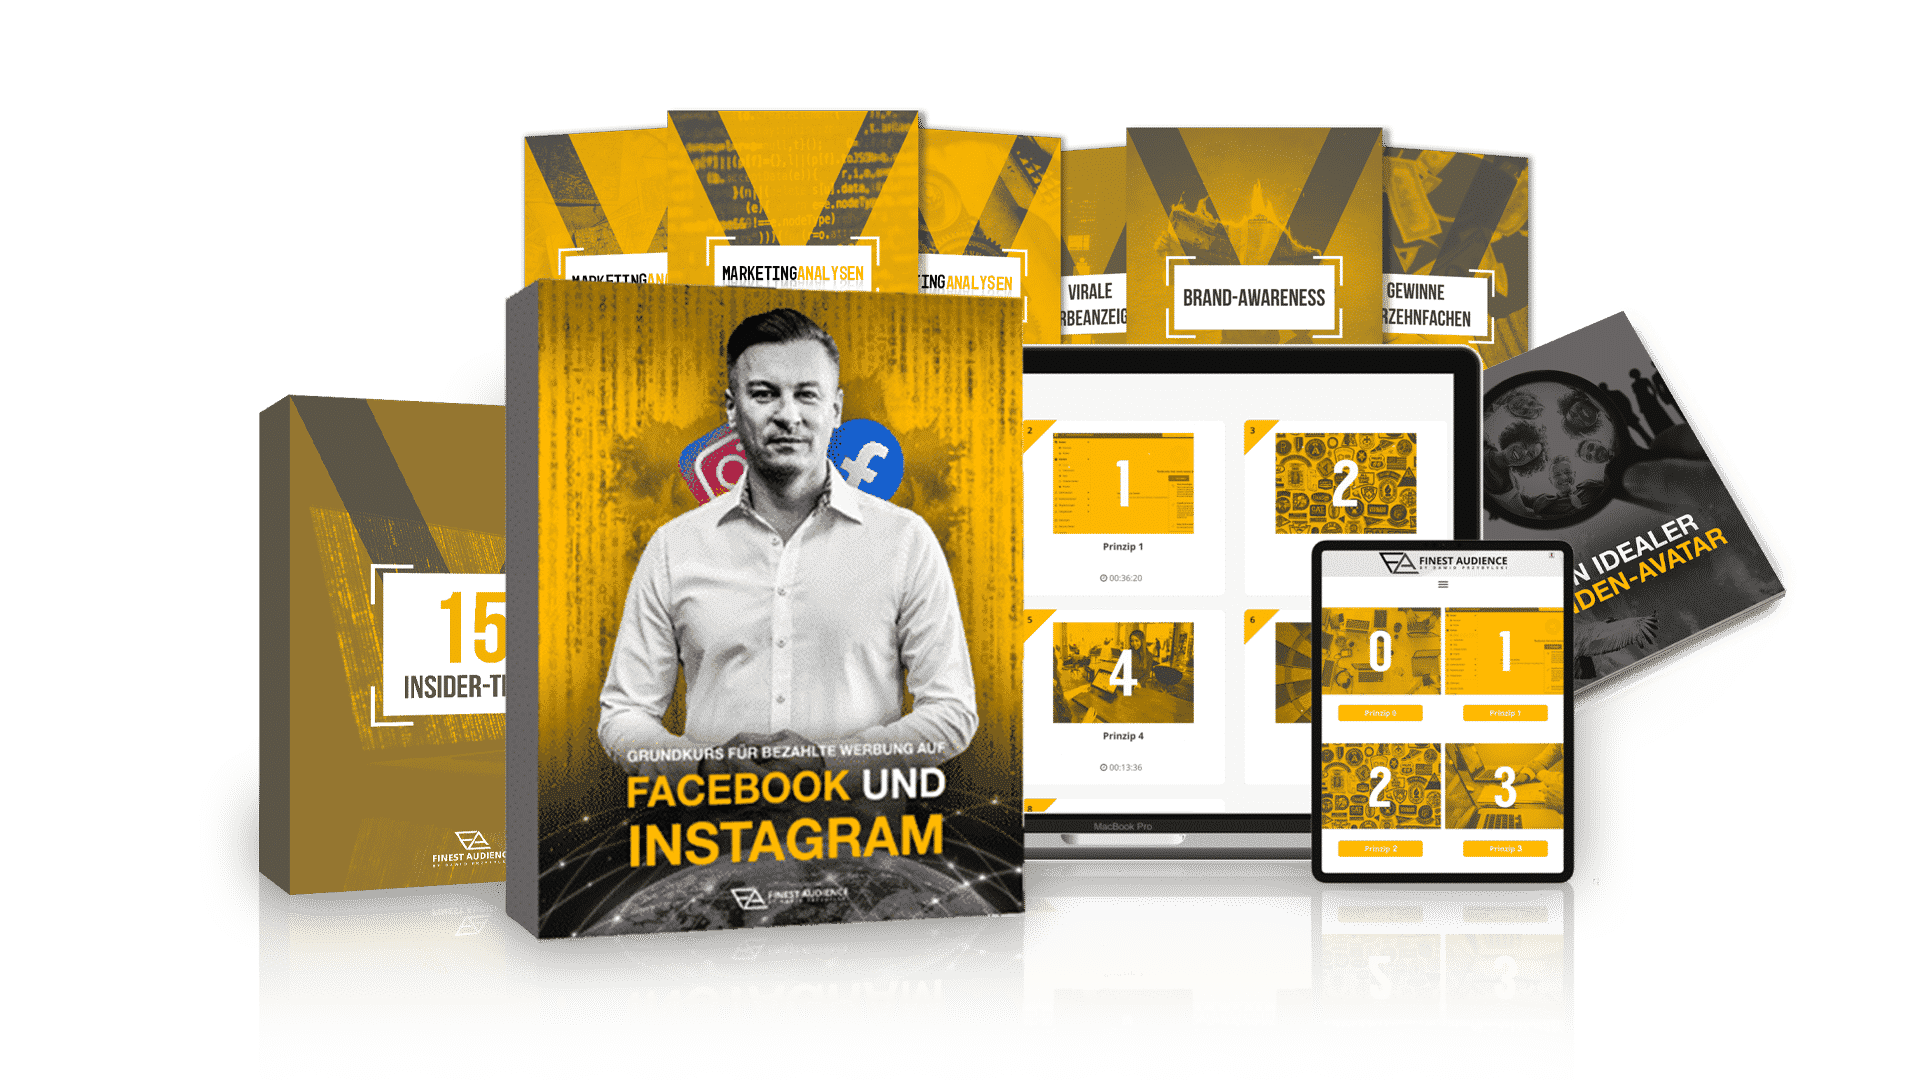 Finest Audience by Dawid Przybylski - Facebook Marketing - Instagram Marketing